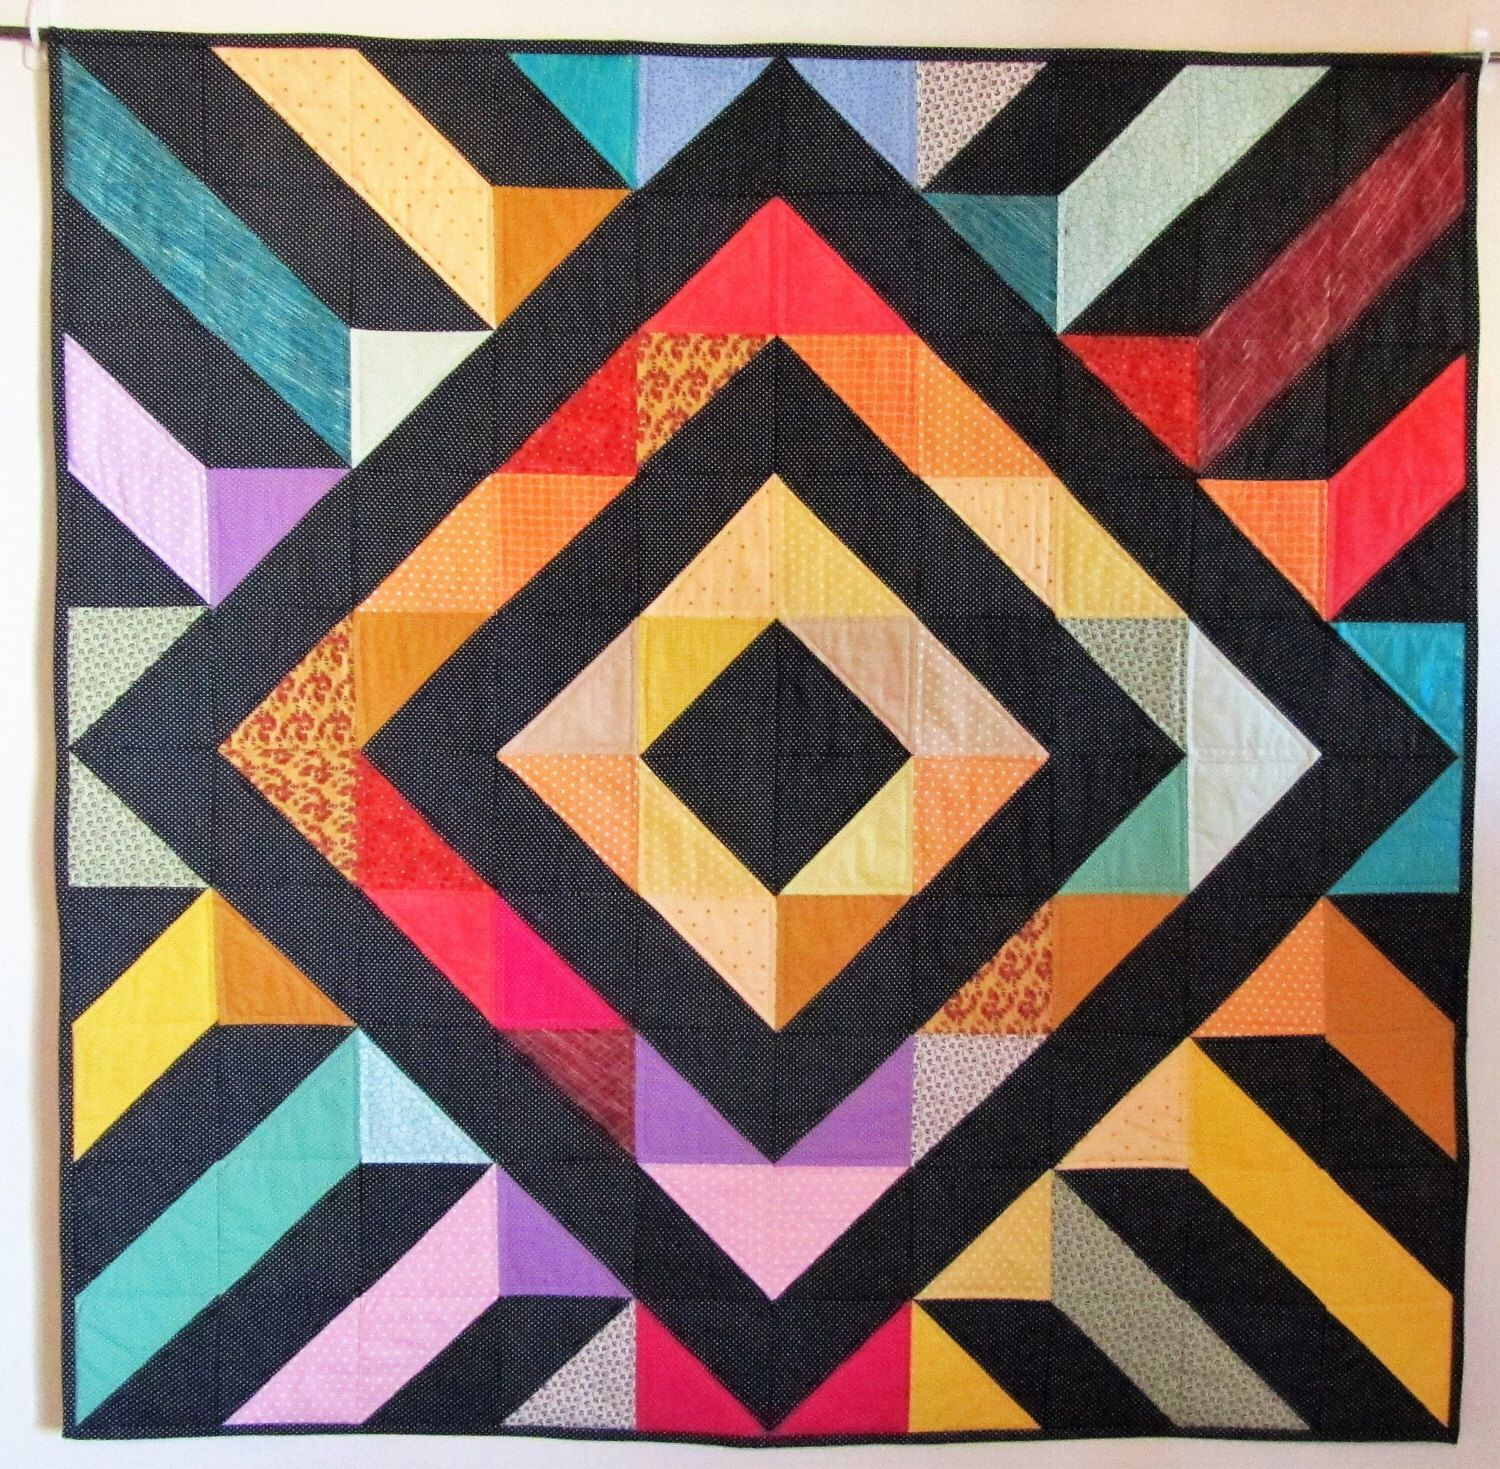 Steps and Diamonds A, Wall Hanging, Homemade Quilt for Sale ... : where to sell handmade quilts - Adamdwight.com